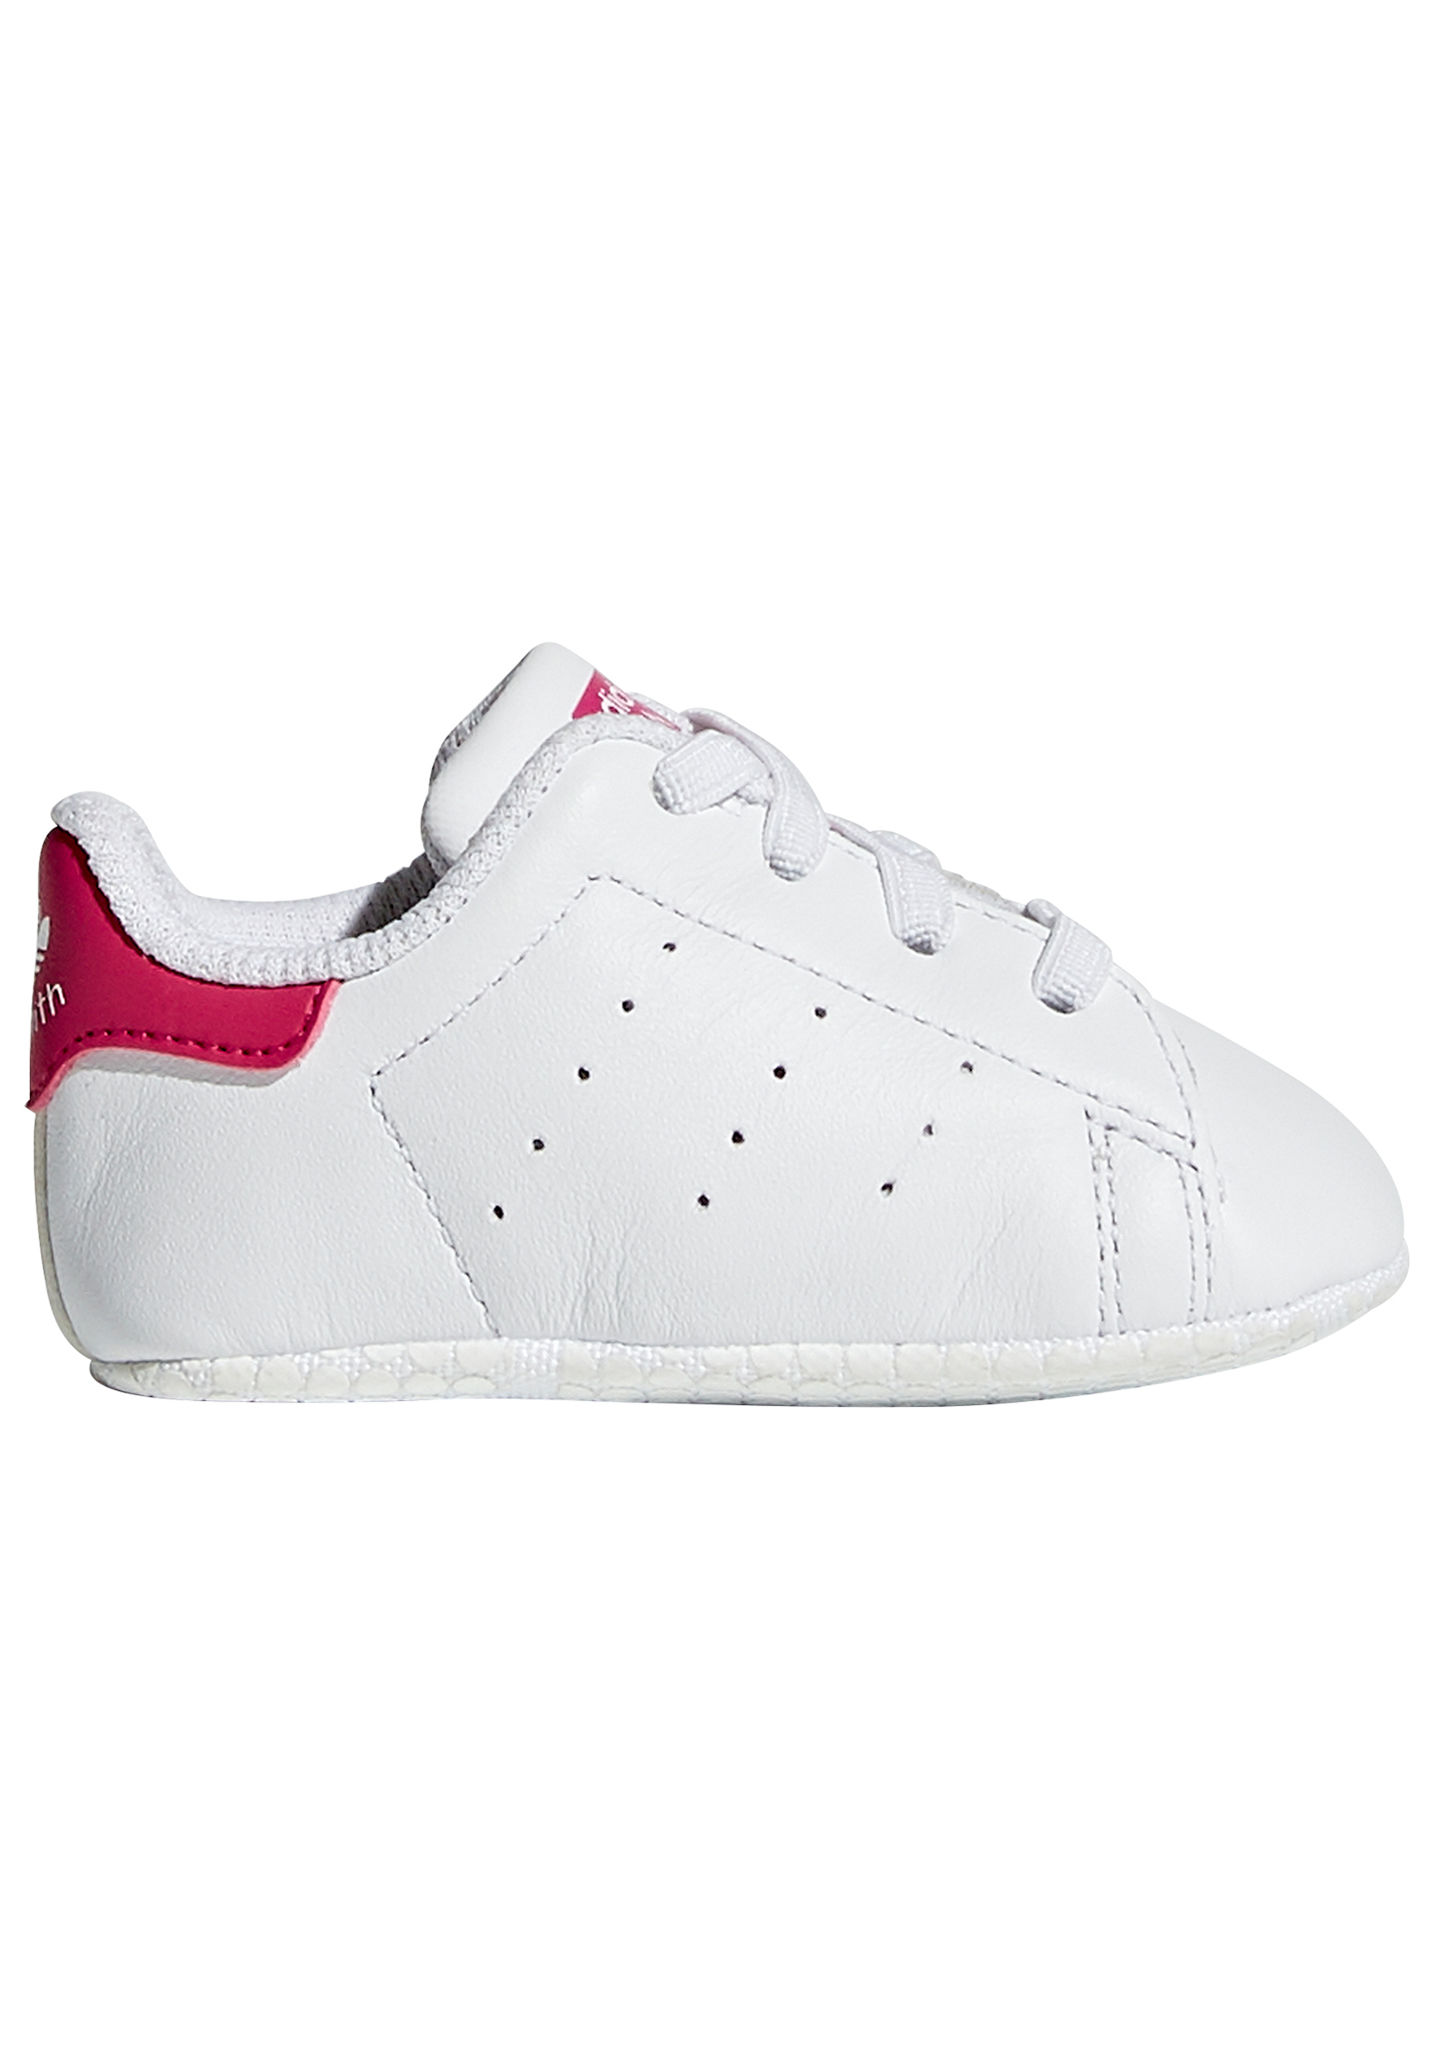 buy popular 35e64 d98ec ADIDAS ORIGINALS Stan Smith Crib - Baskets - Blanc - Planet Sports